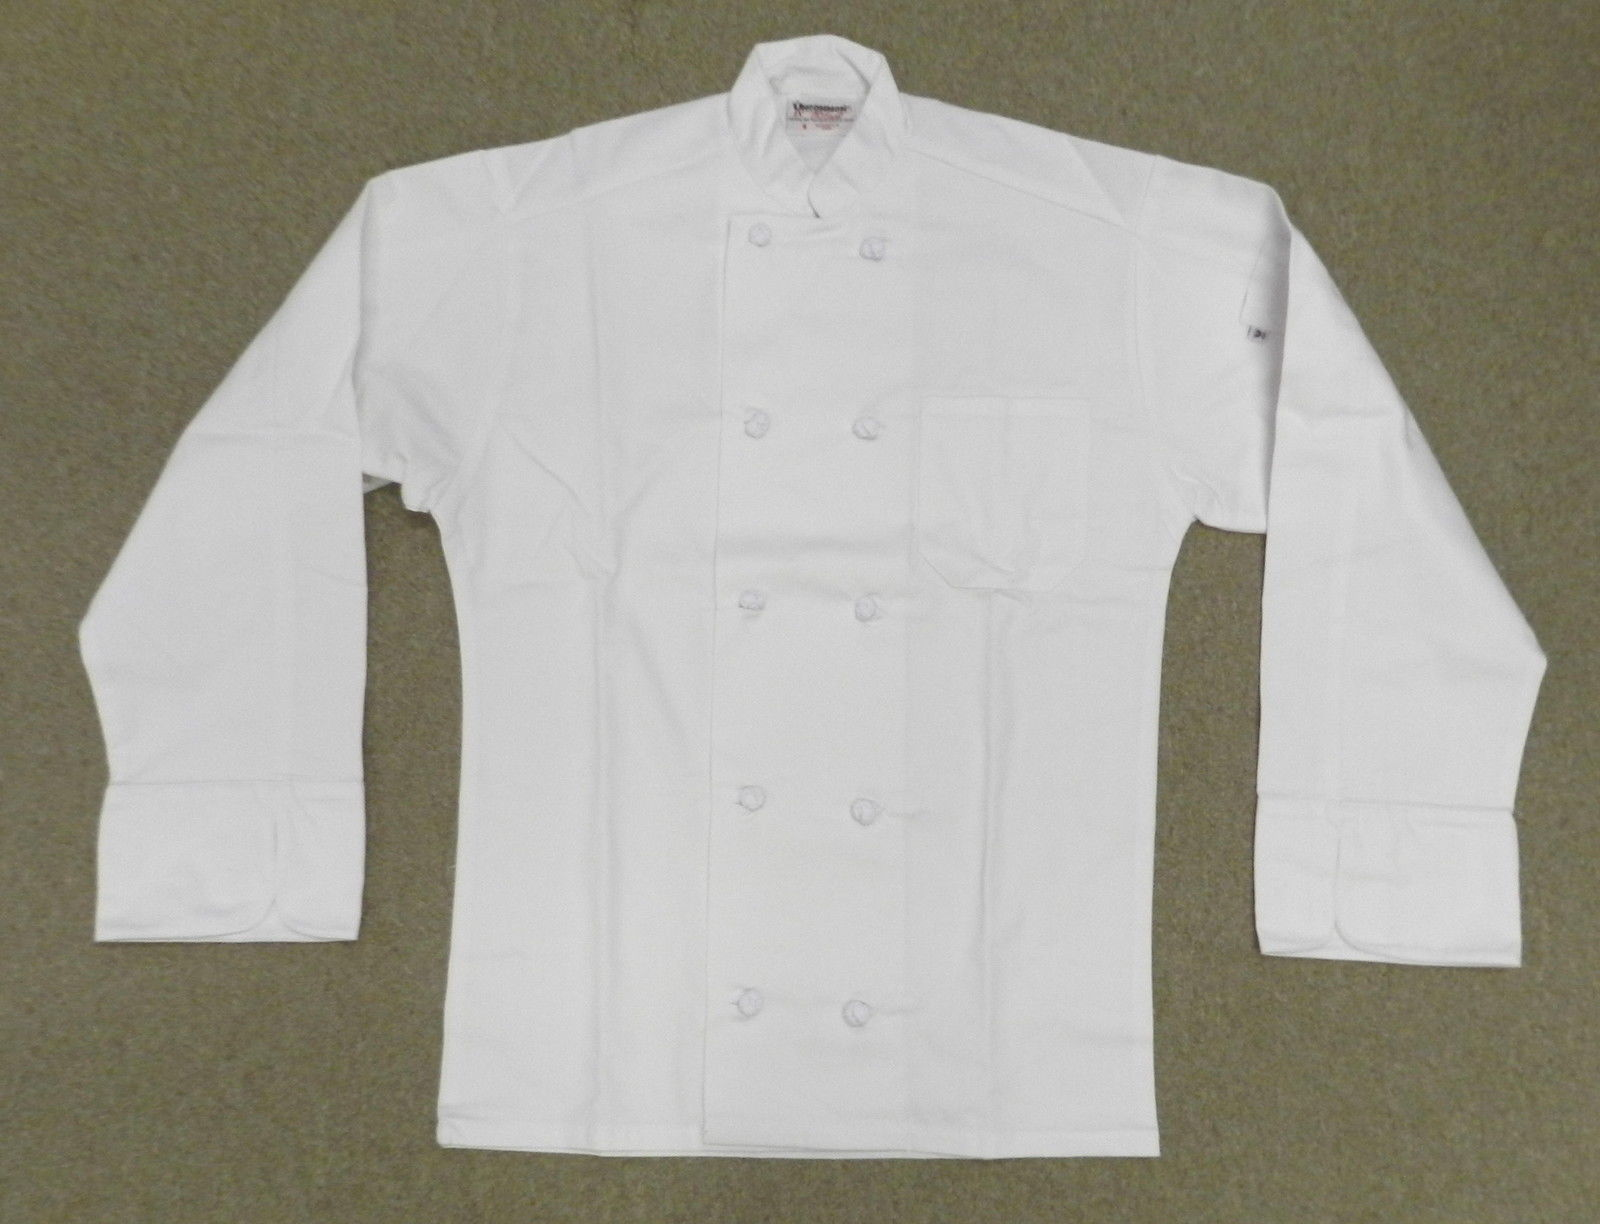 Primary image for Chef Jacket White XL Uncommon Threads 403 Cloth Knot Button Uniform Coat New